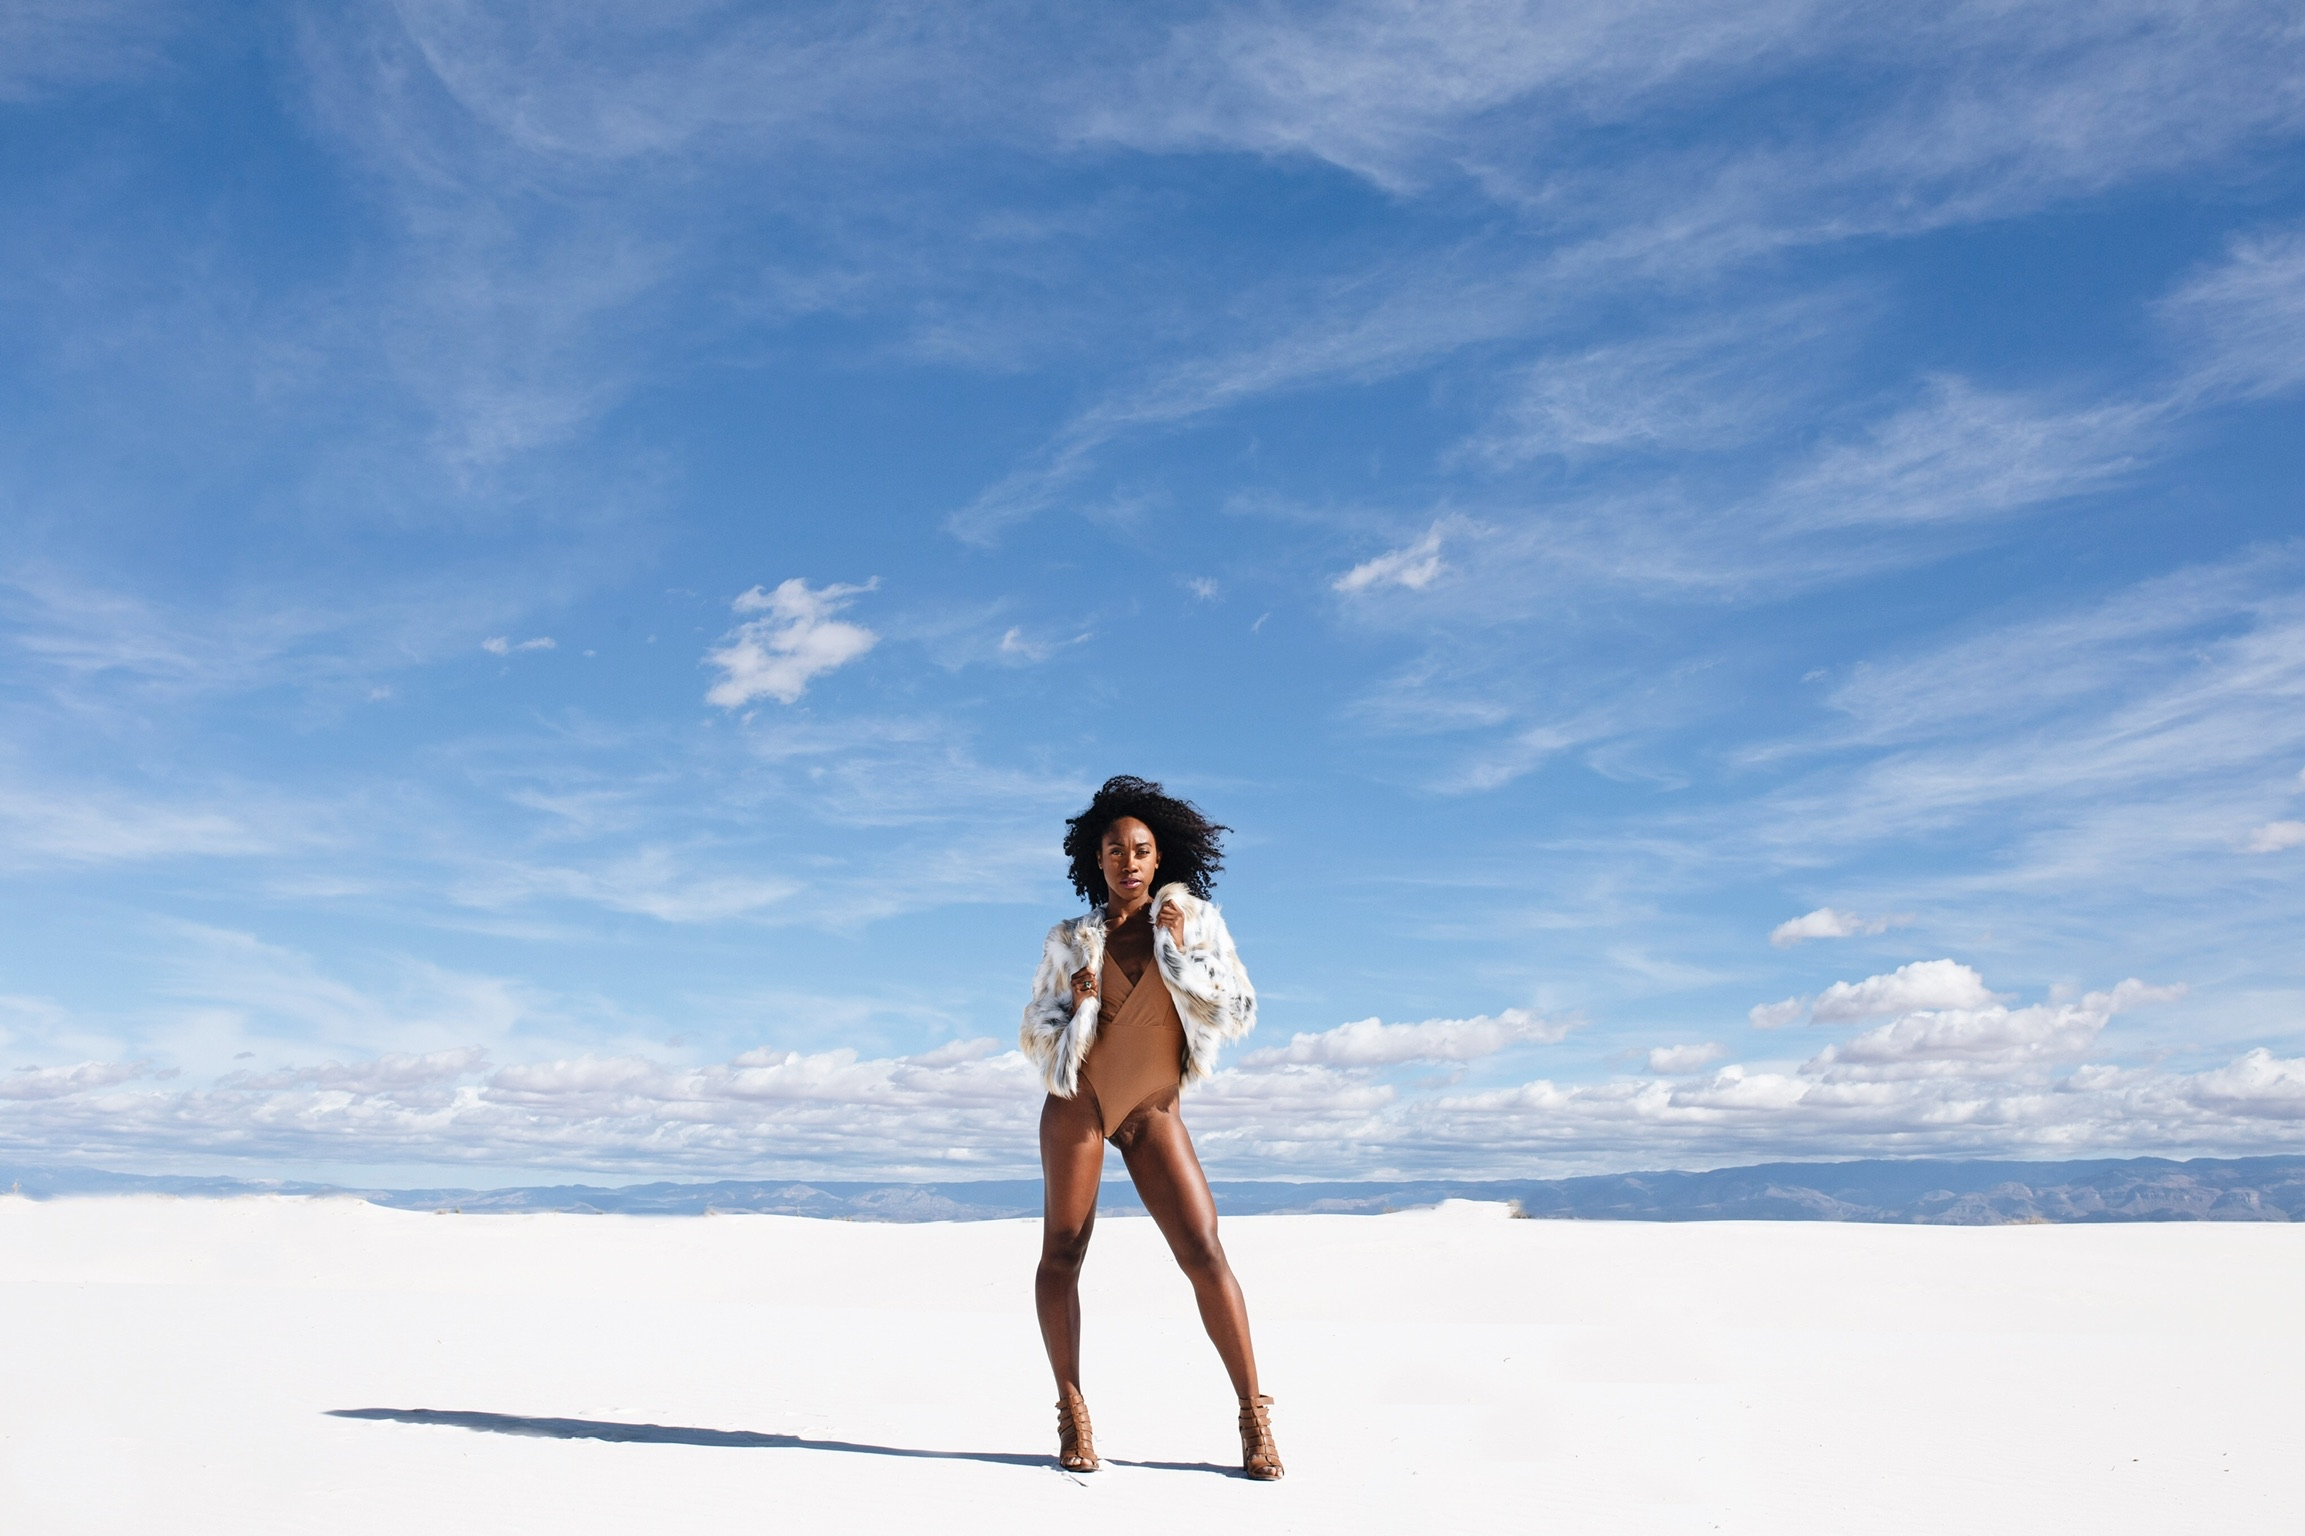 White Sands, New Mexico. Photo credit: Brianna Doe